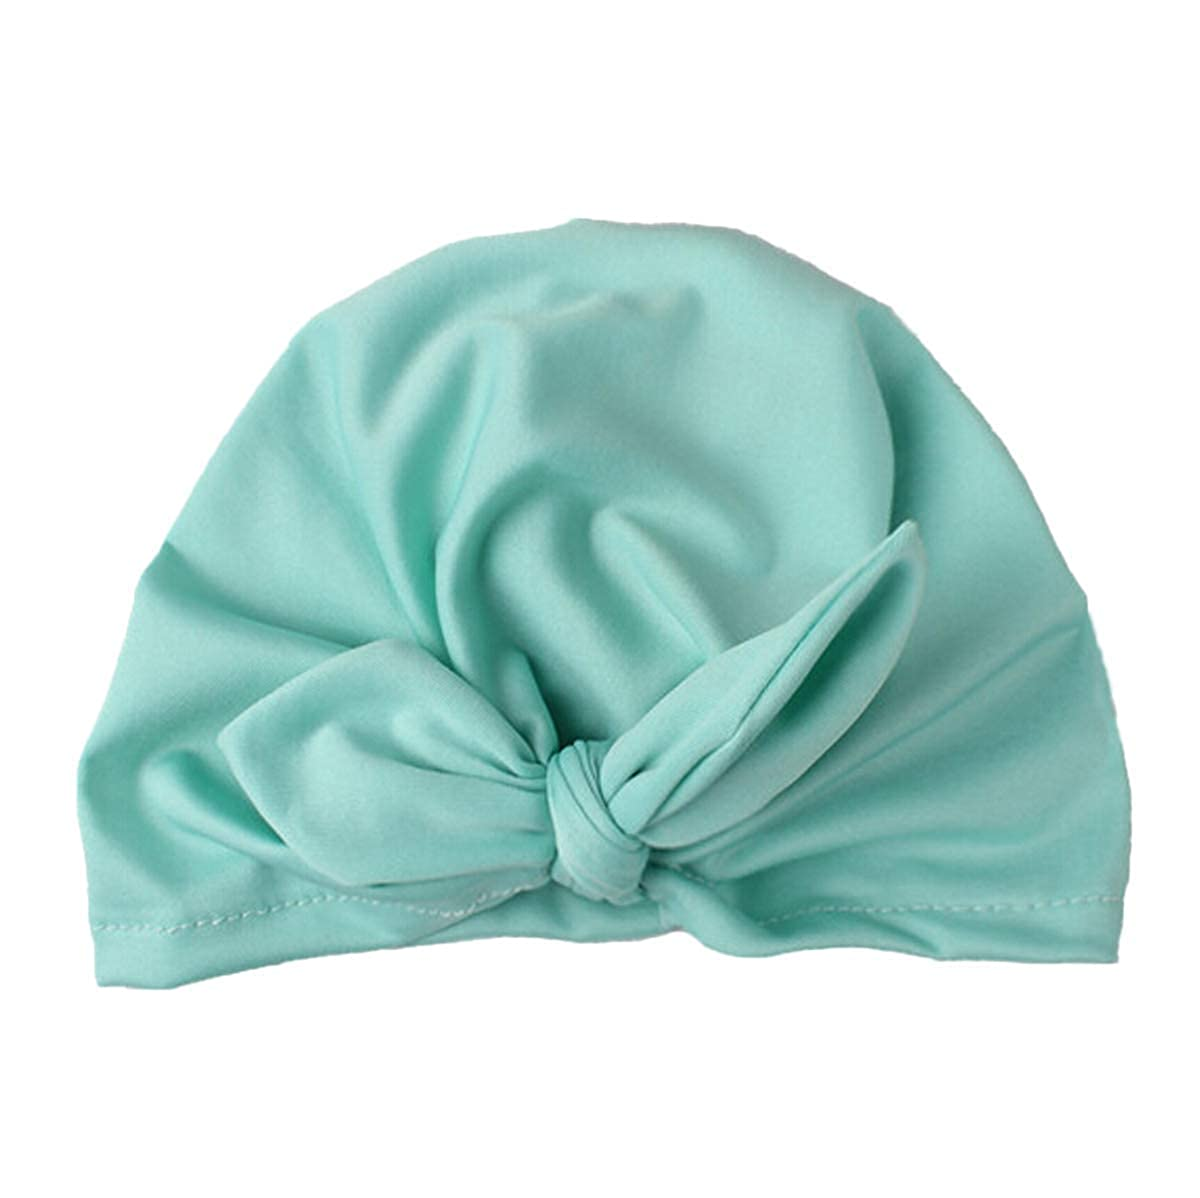 remeo suit Newborn Infant Baby Boy Girl Hospital Hat Bunny Ears Indian Turban Wrap Knot Cap